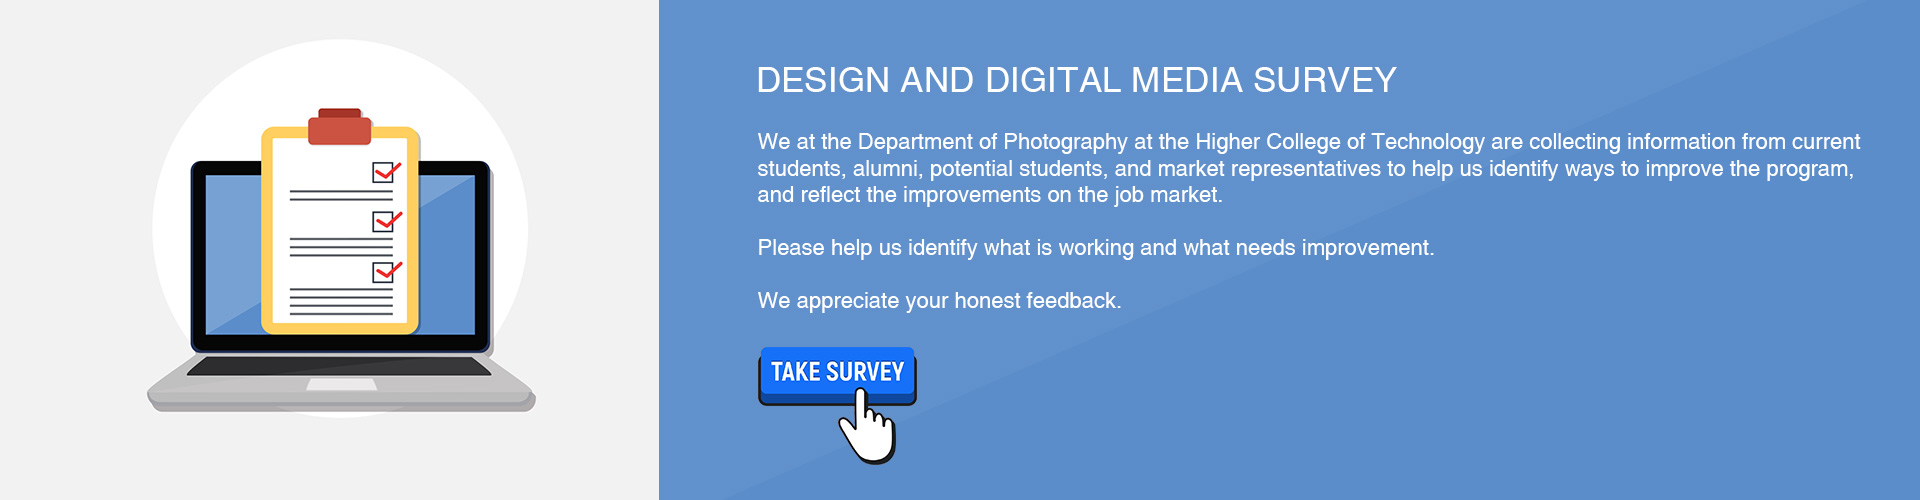 Design and Digital Media Survey